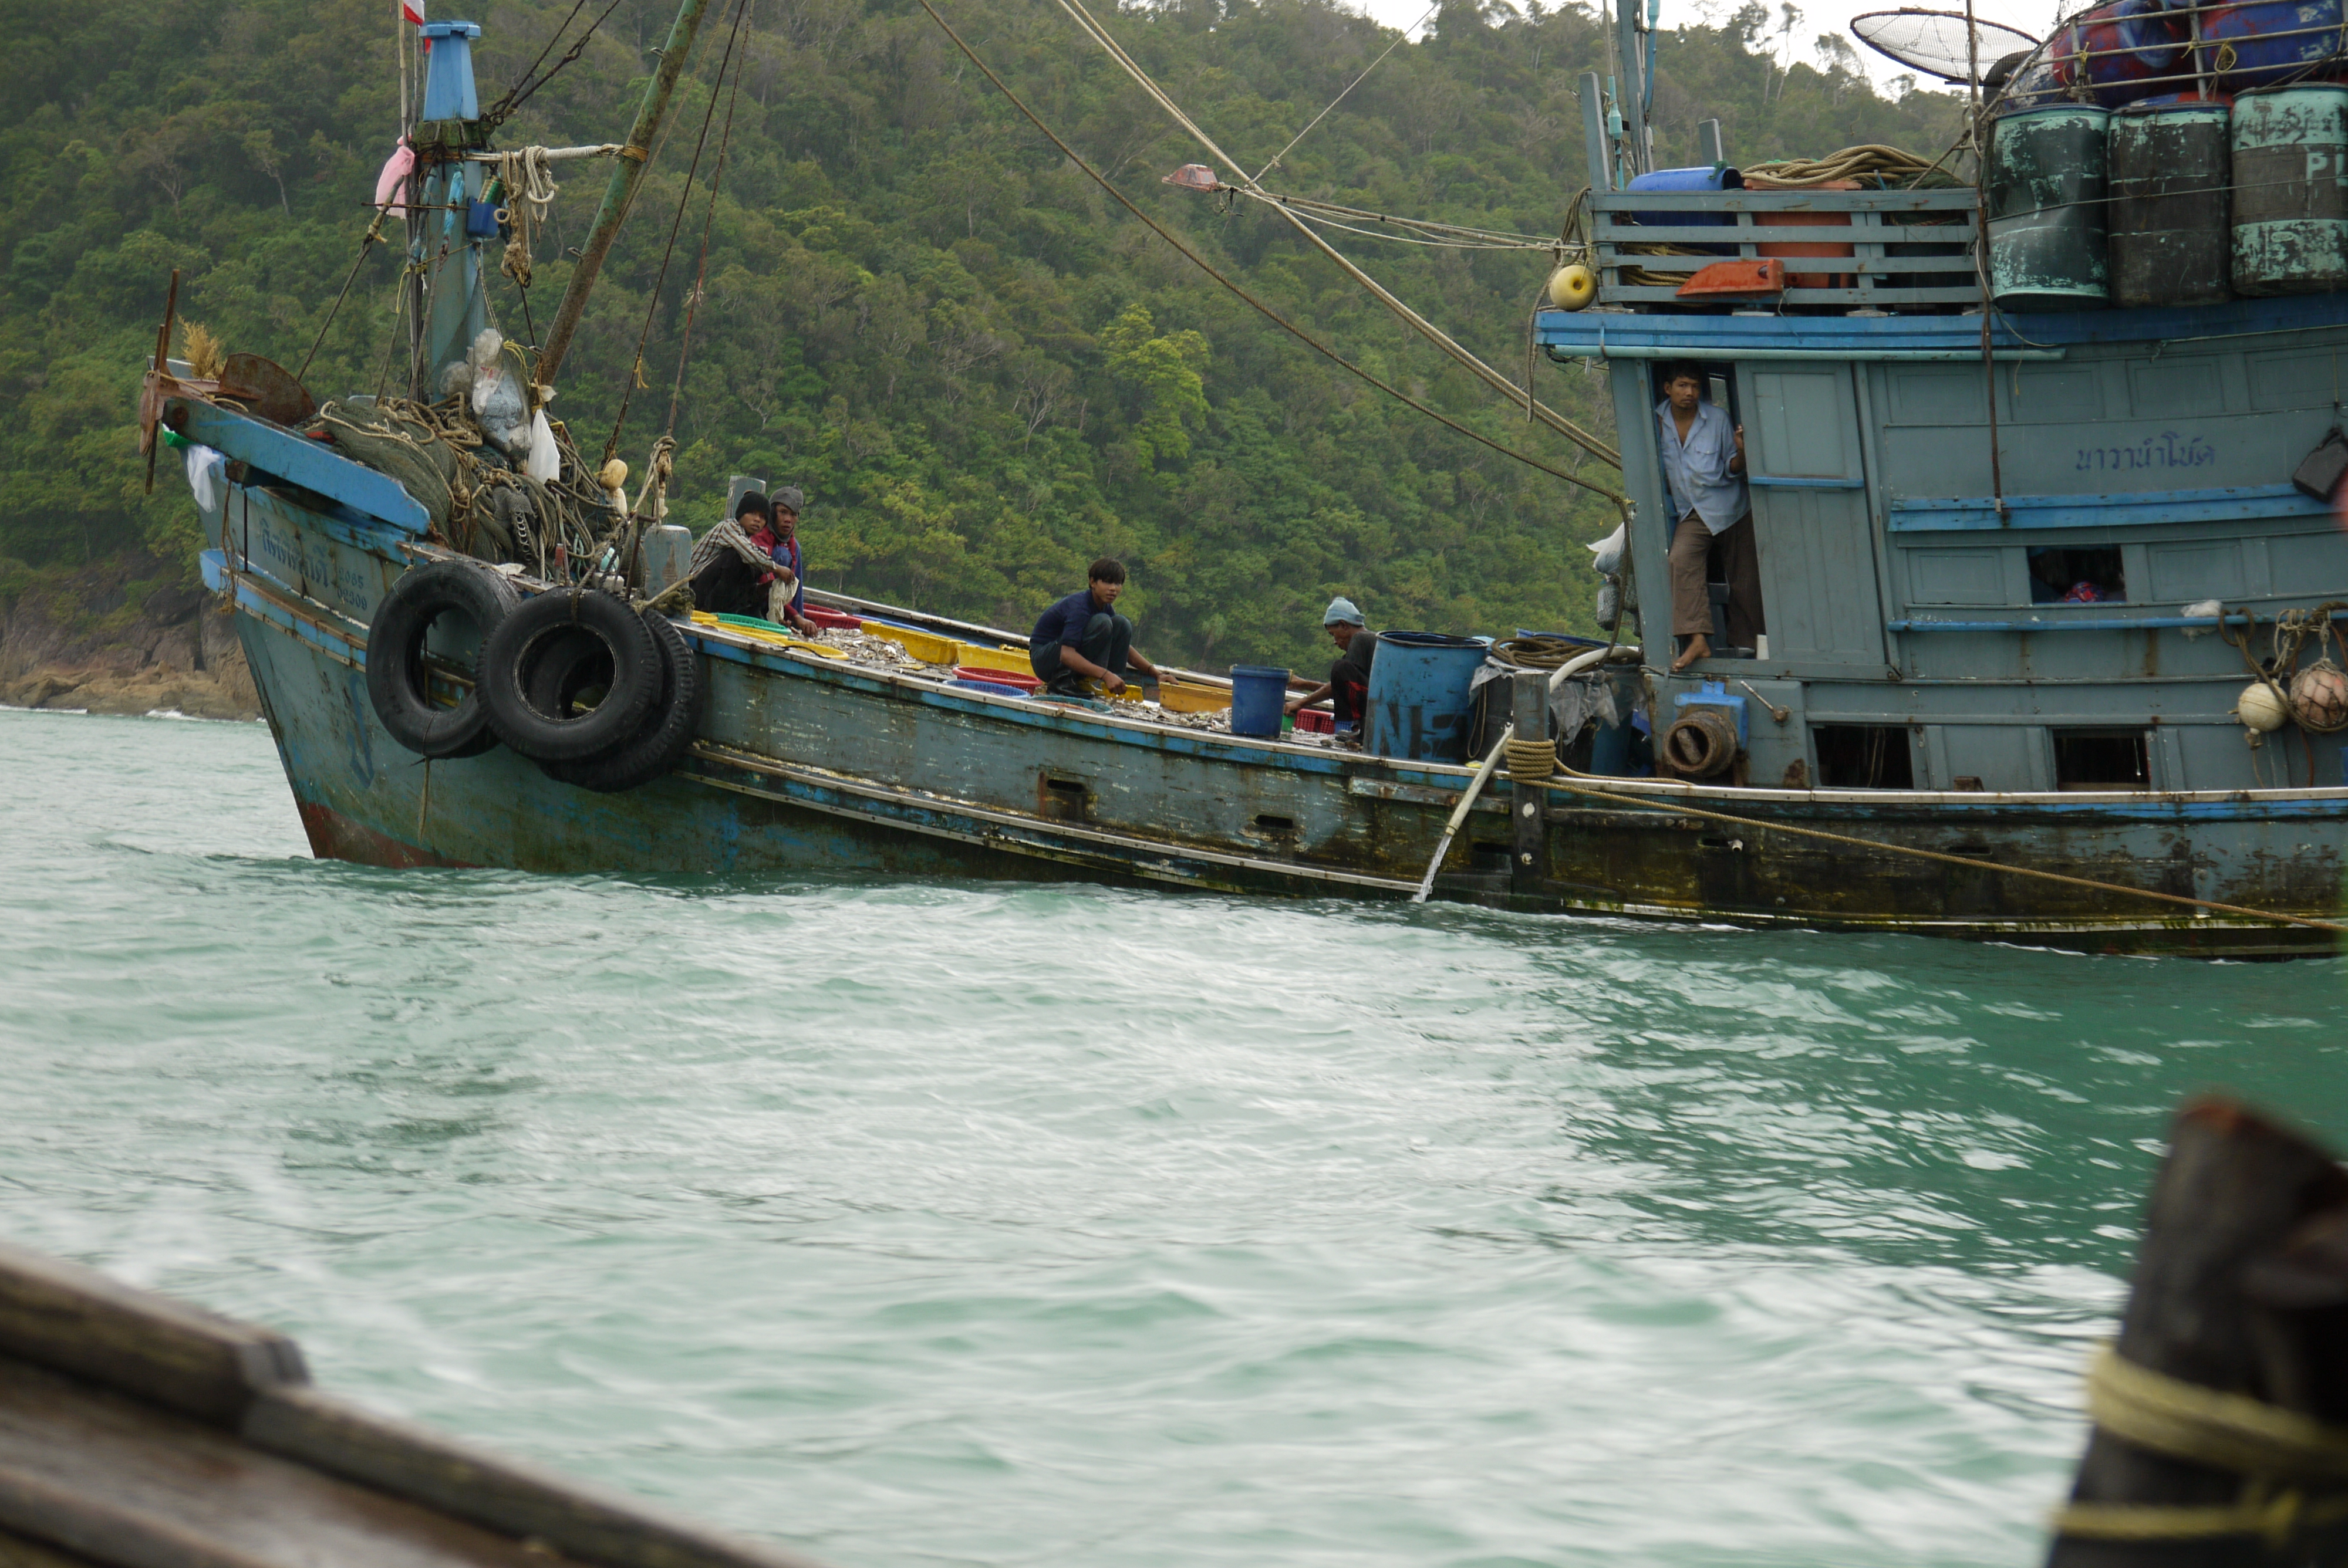 Migrant workers on a fishing boat on the Andaman coast of Thailand (Photo: Nathan Bennett)